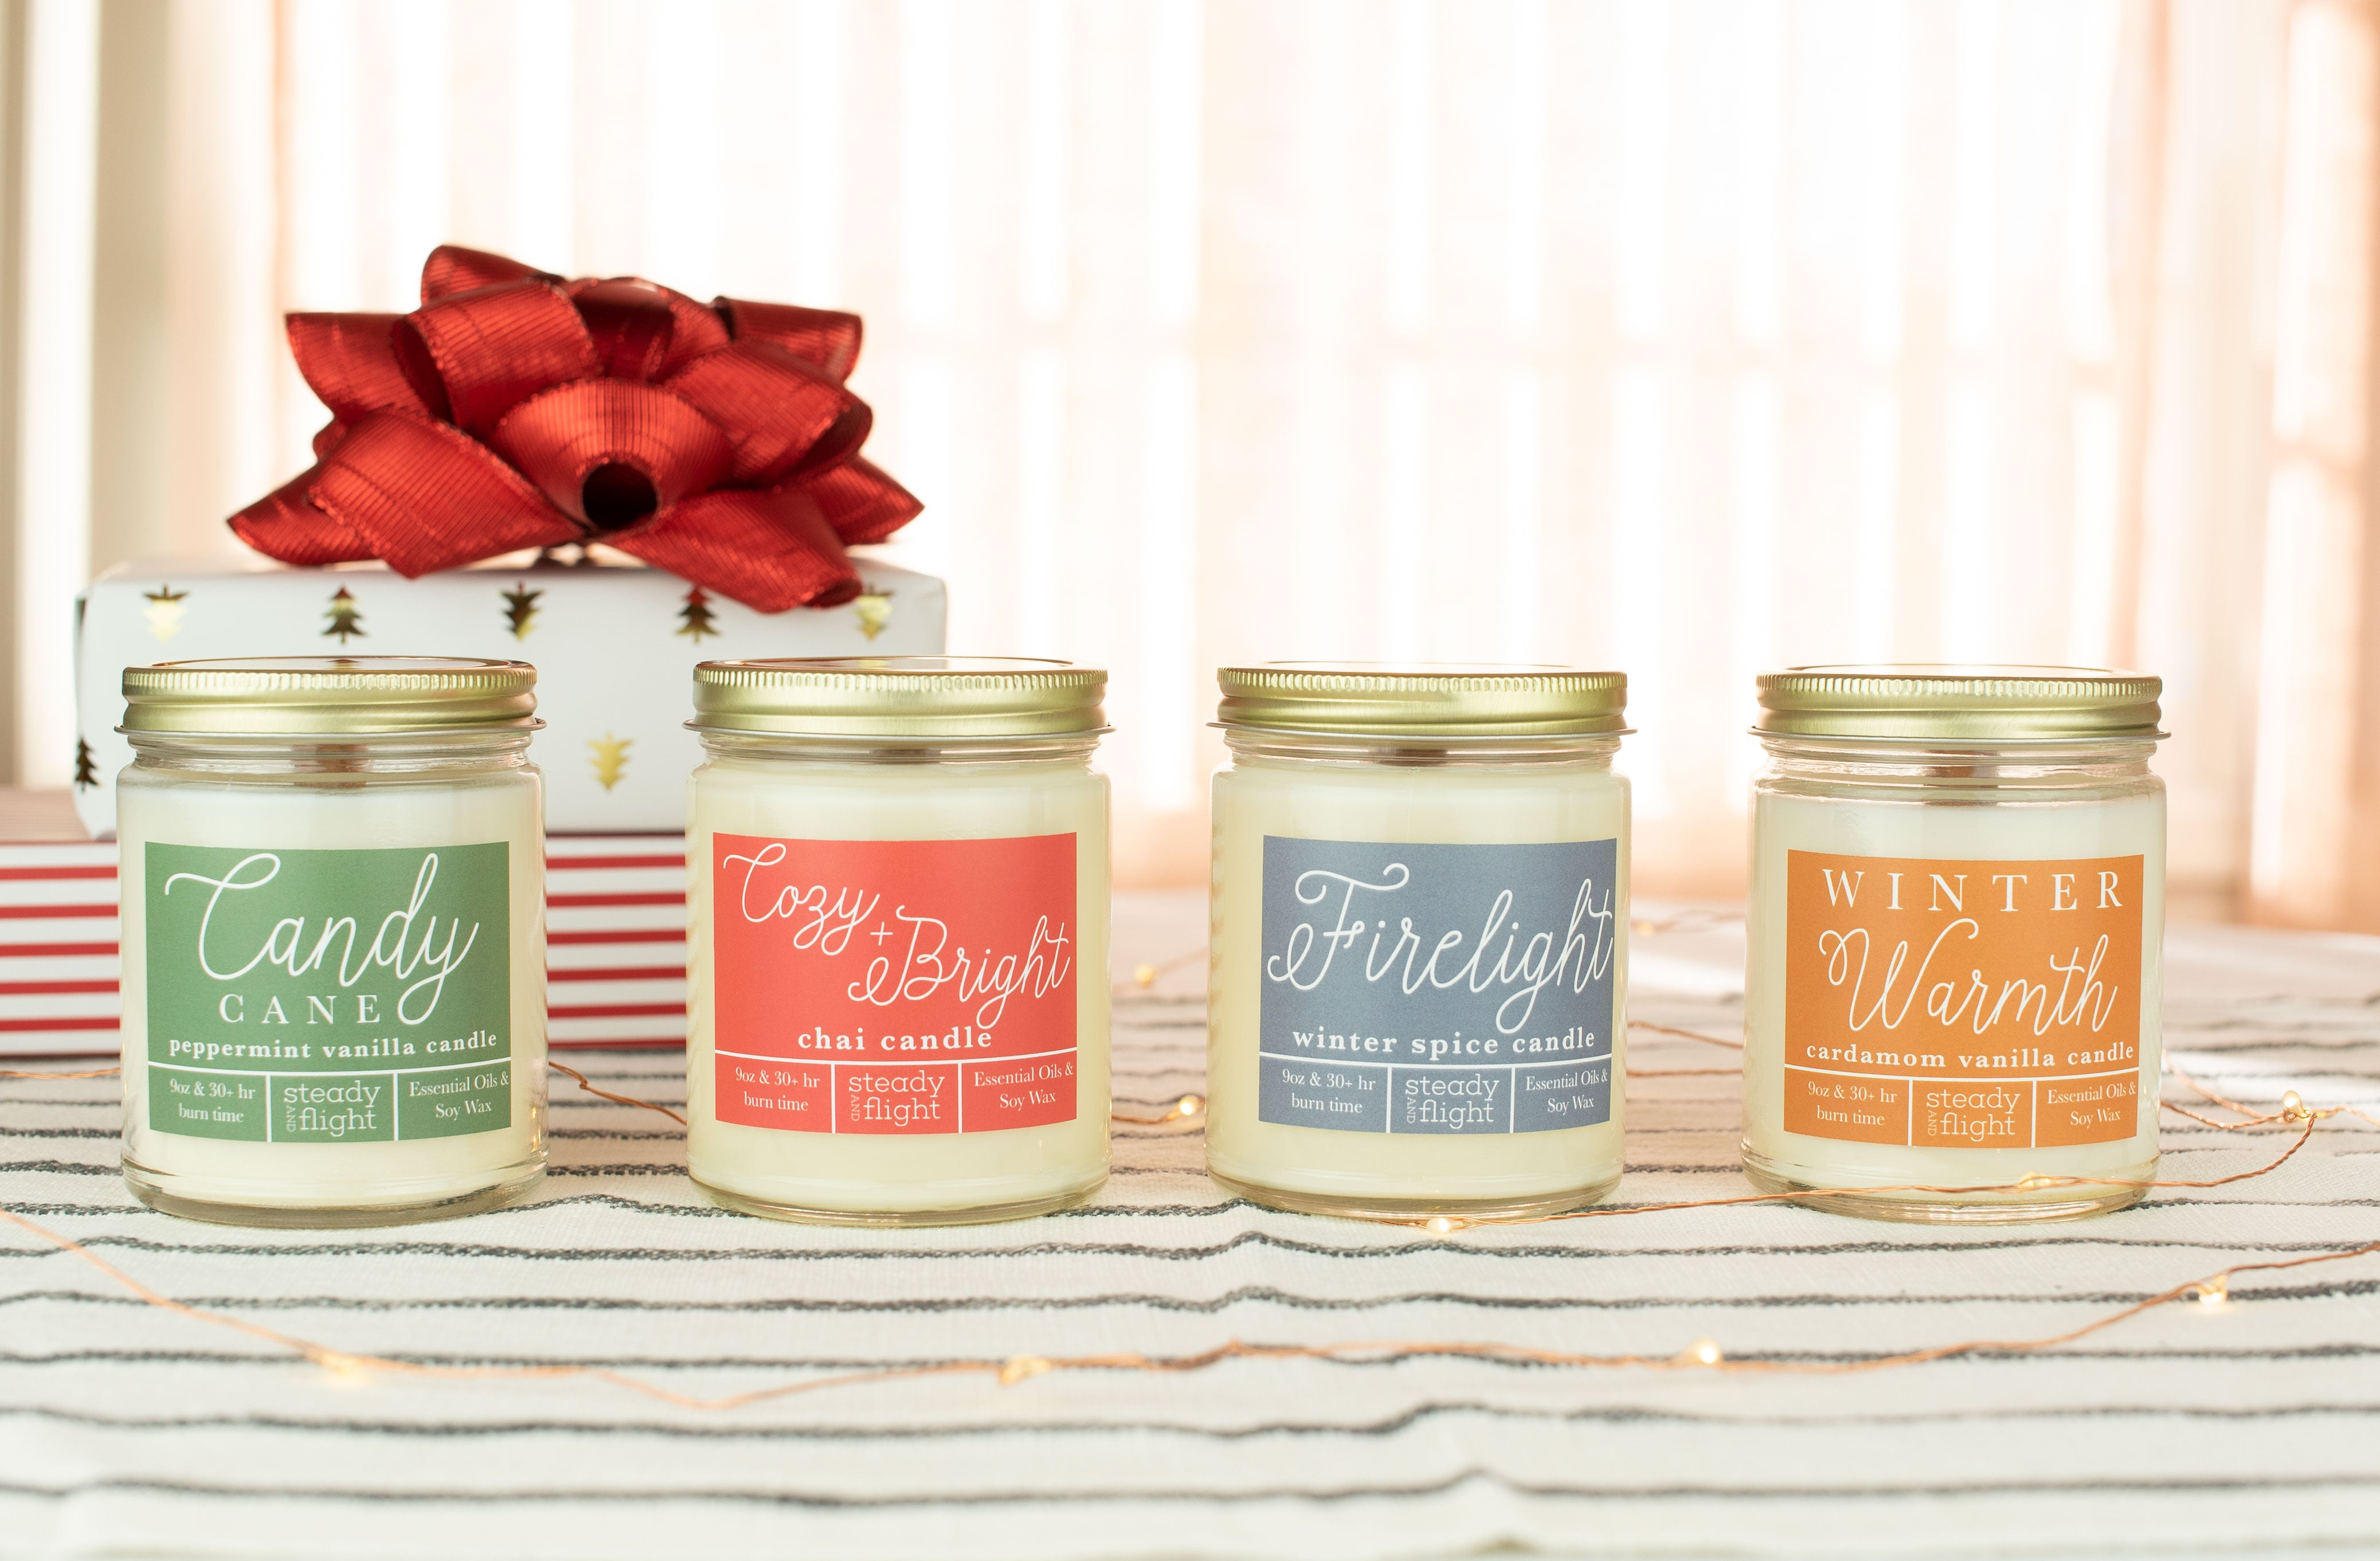 Candle Gift Subscription Box - 2 months